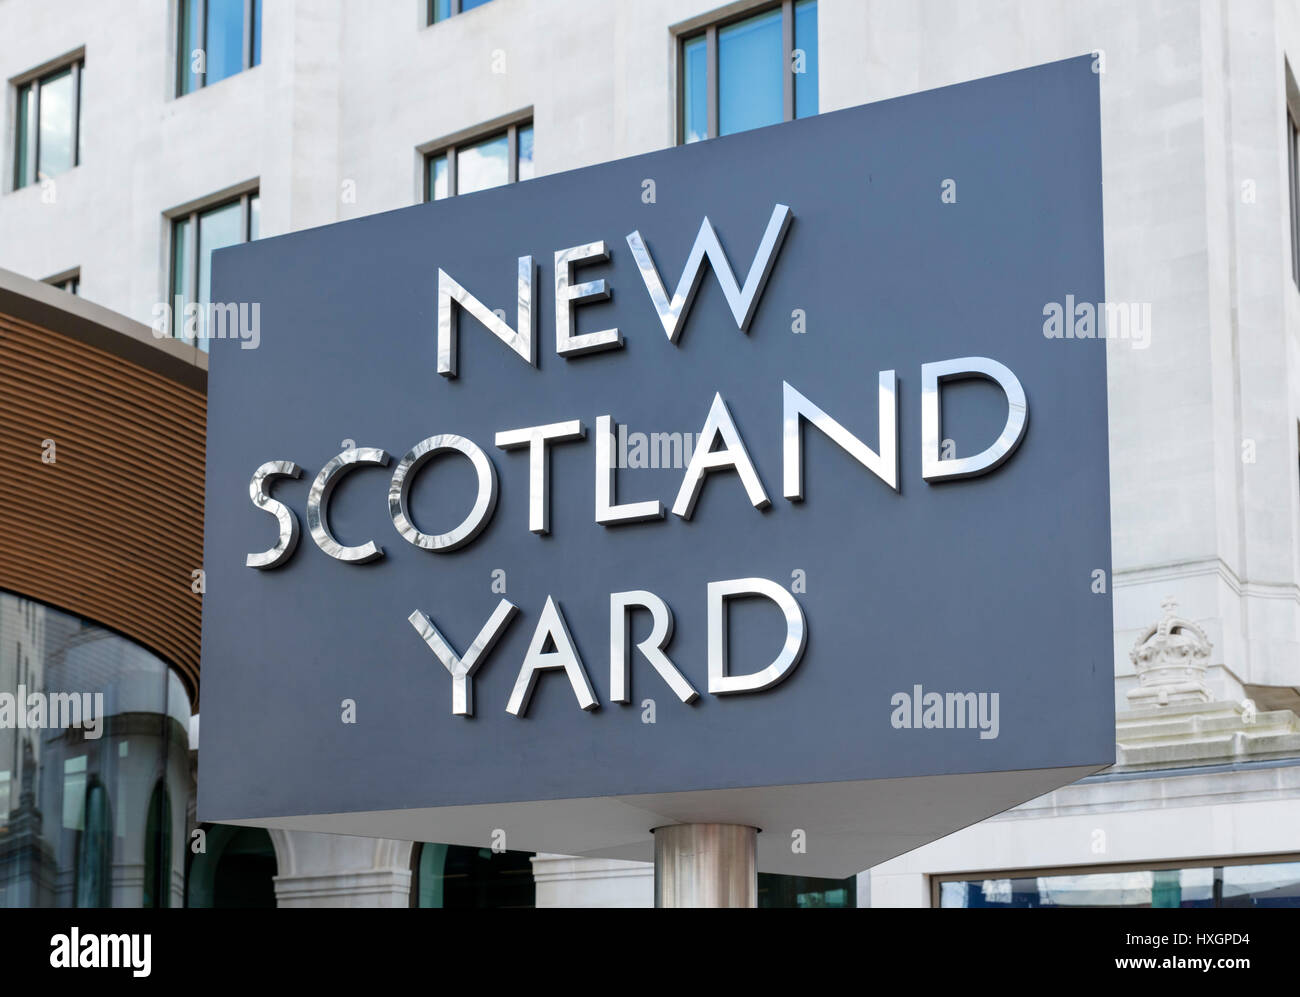 Revolving sign outside the Metropolitan Police headquarters at New Scotland Yard, Victoria Embankment, London, England, - Stock Image